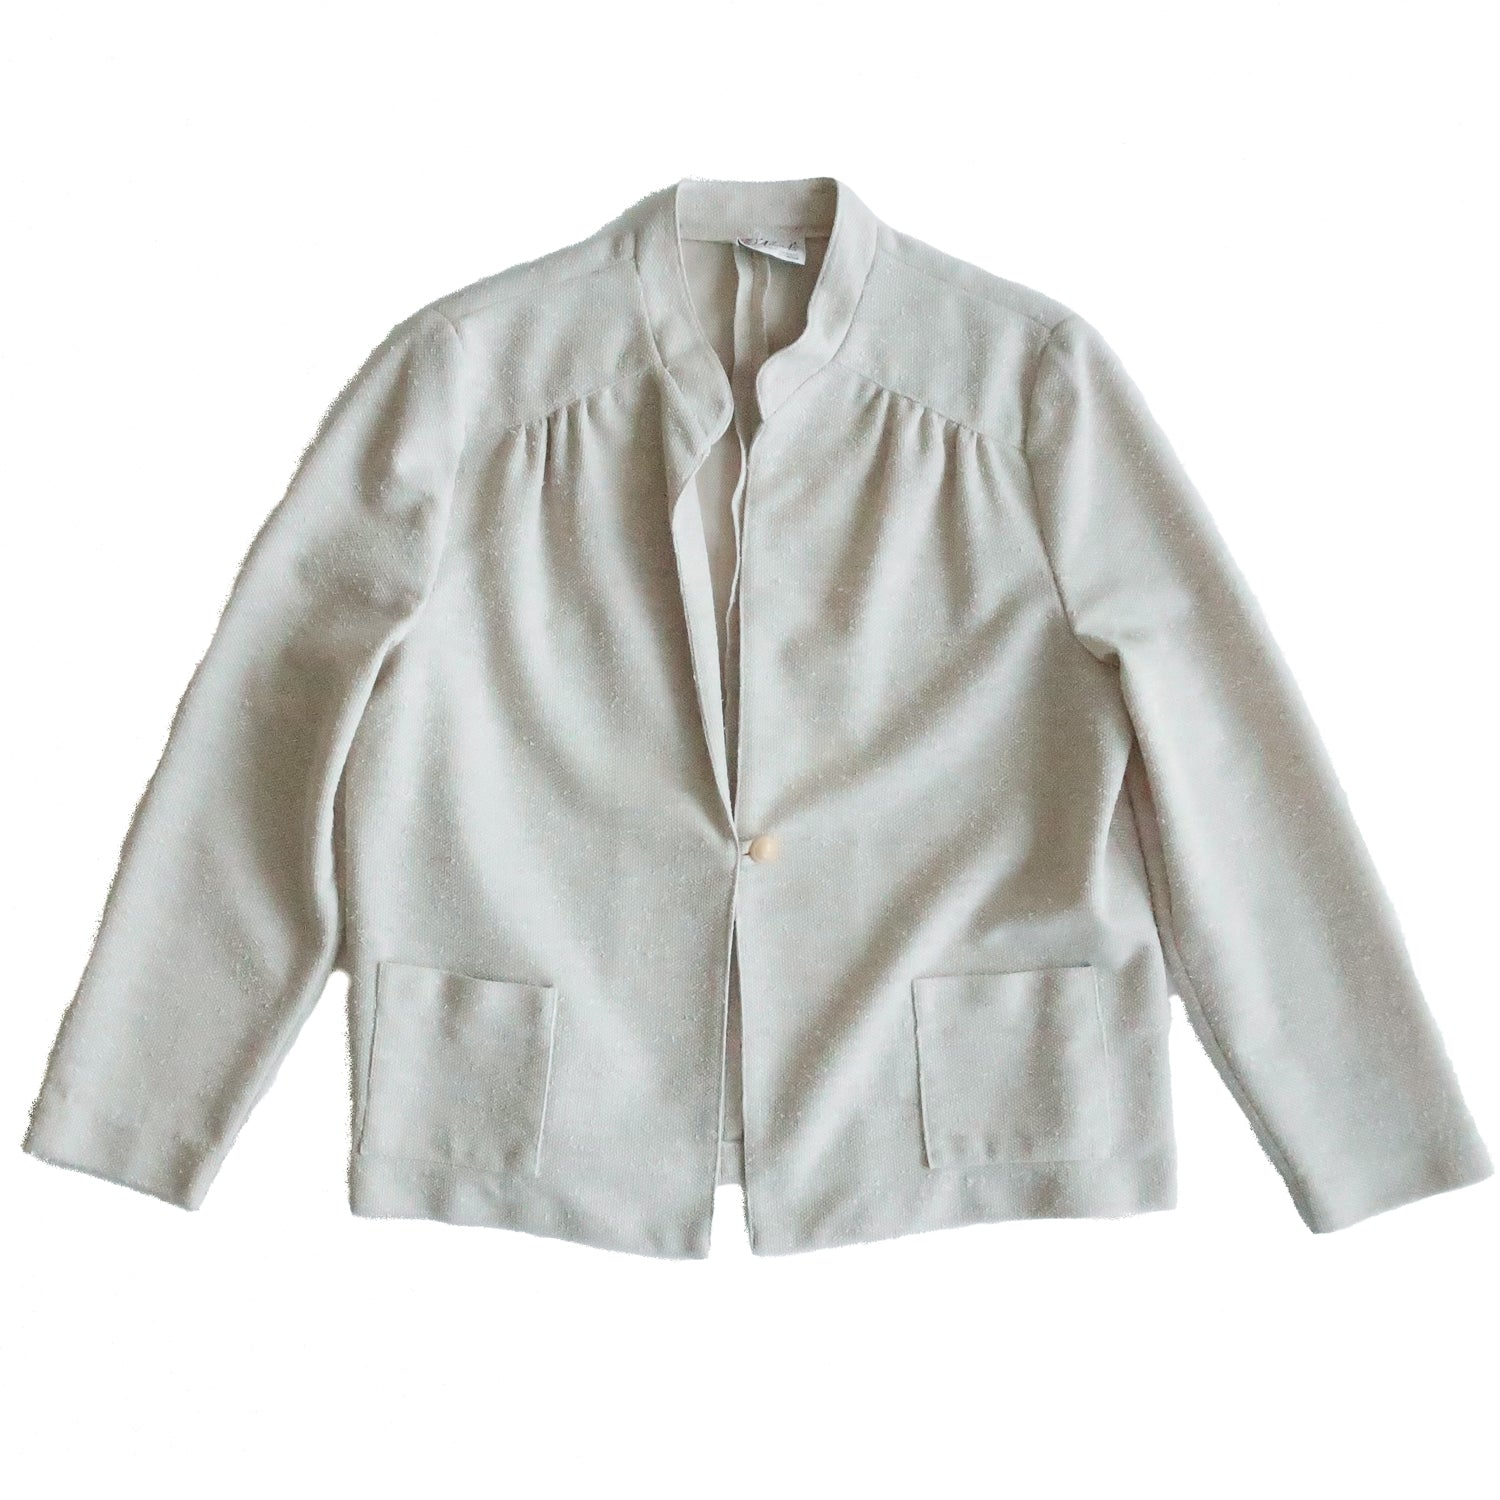 Second Room Vintage Clothing. Vintage oatmeal coloured textured fabric jacket, with small standing collar, one button closure and two front patch pockets. Free Shipping on all orders within North America.